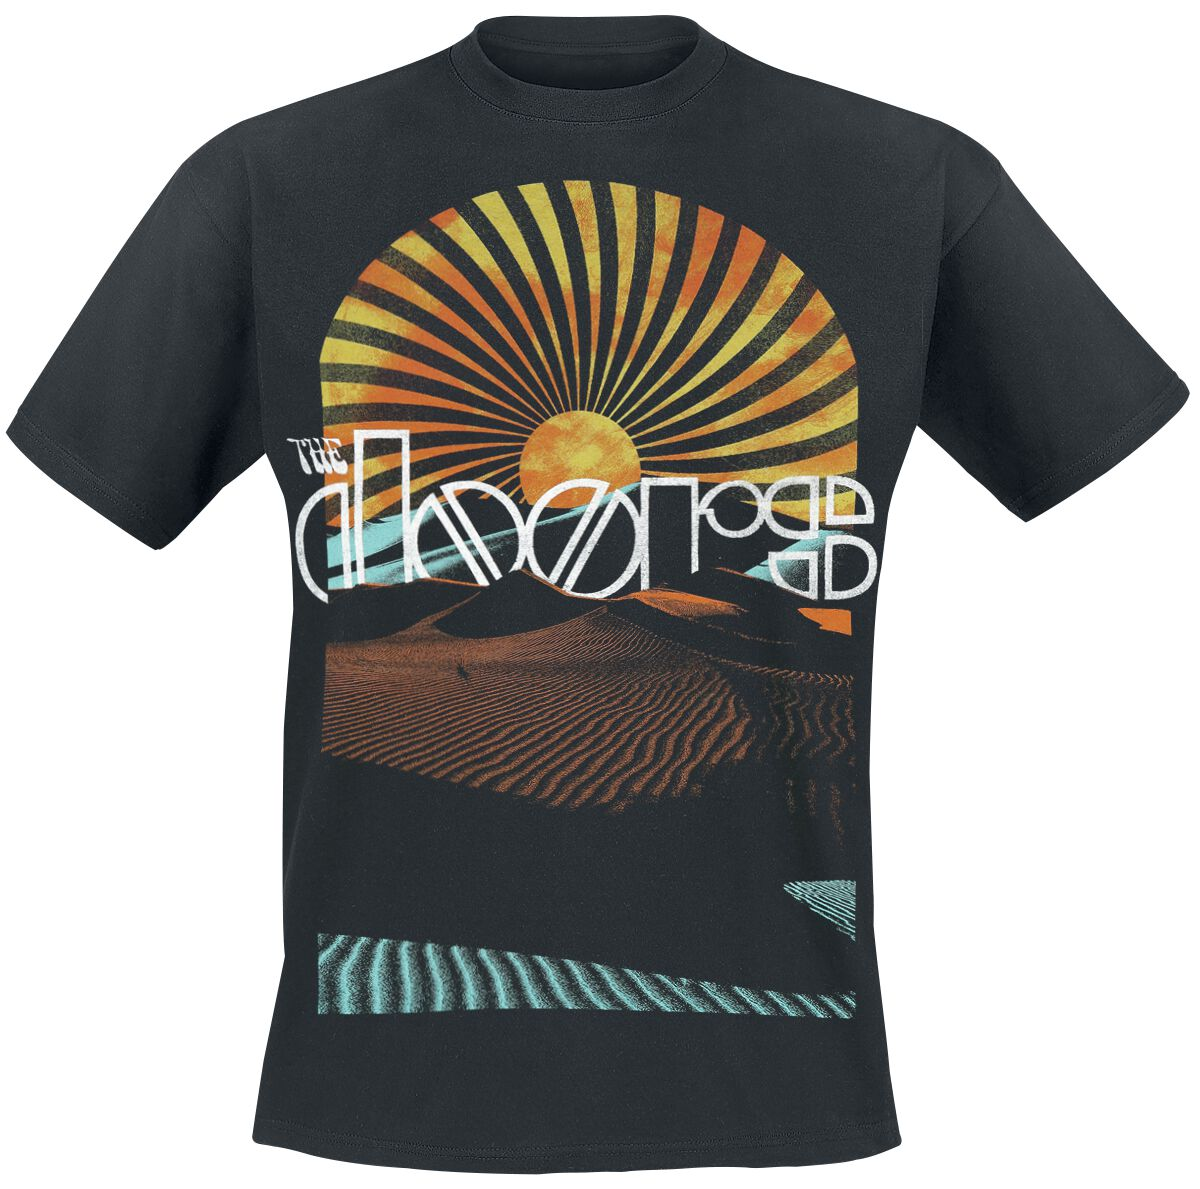 The Doors Day Break T-Shirt black